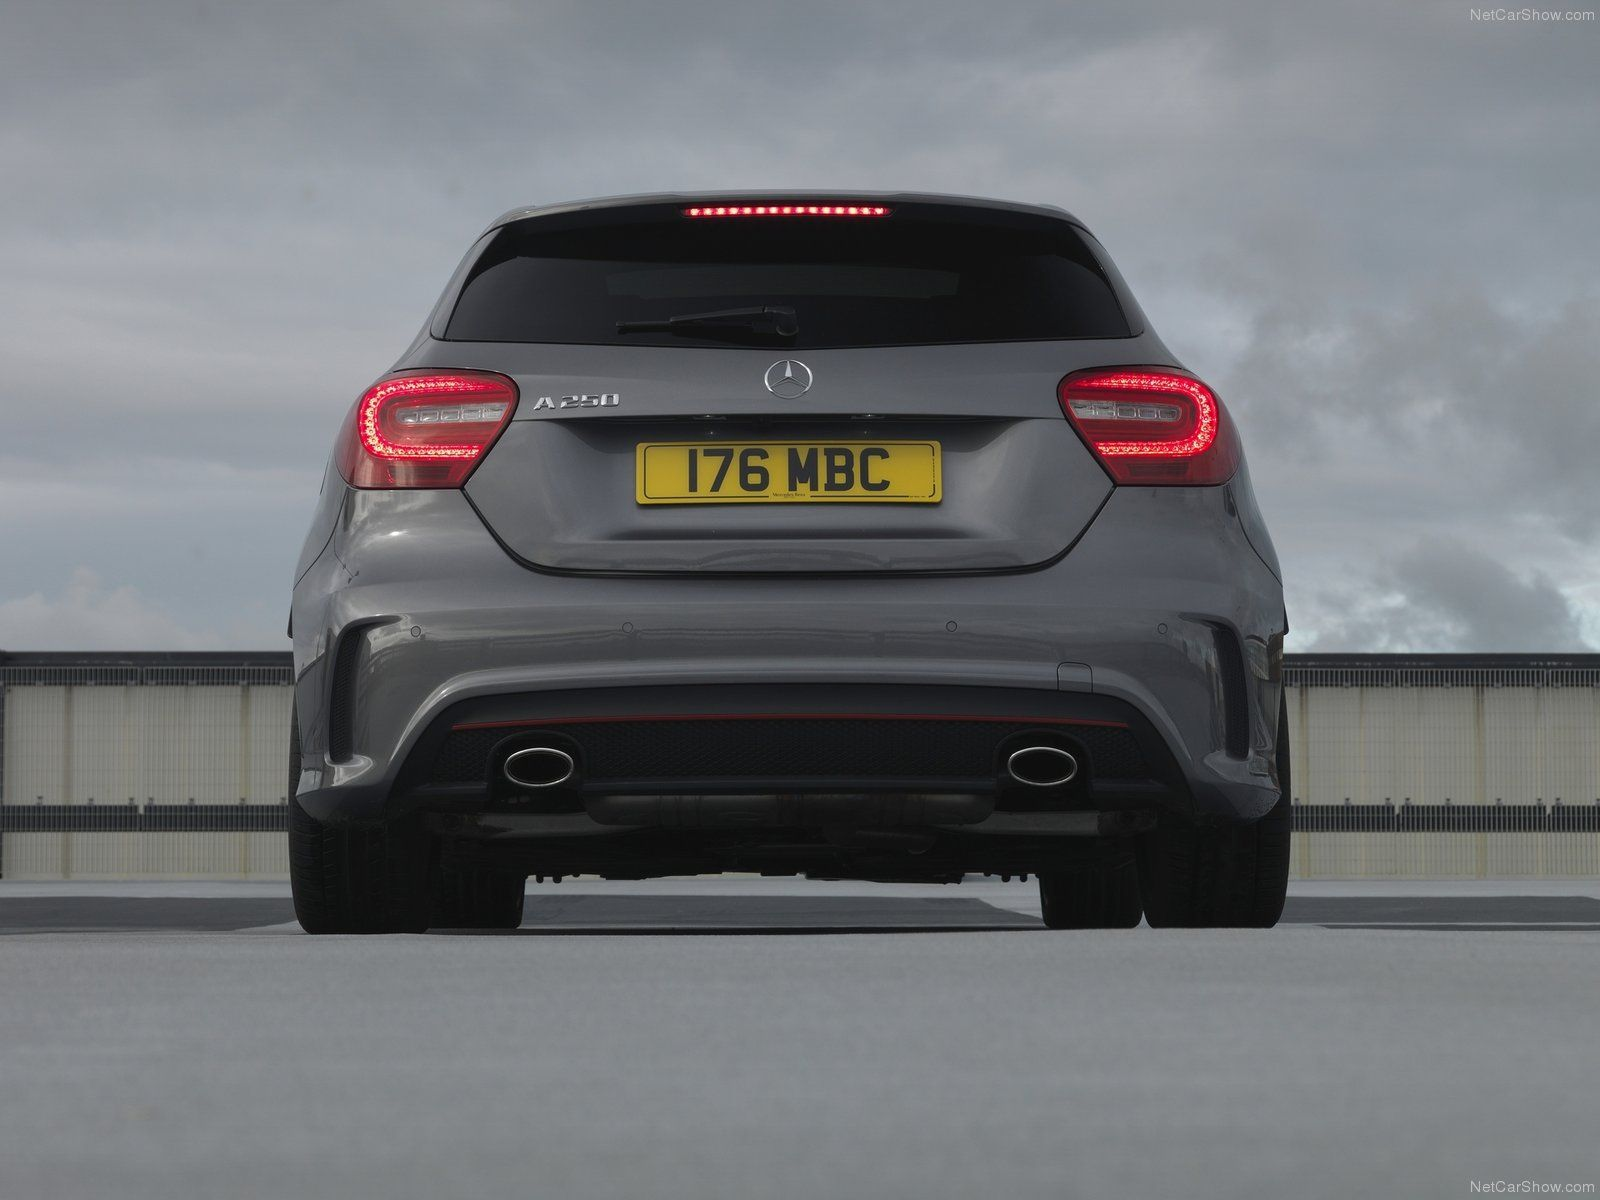 Mercedes a class amg sport 2013 cars rear view for Mercedes benz lease rates